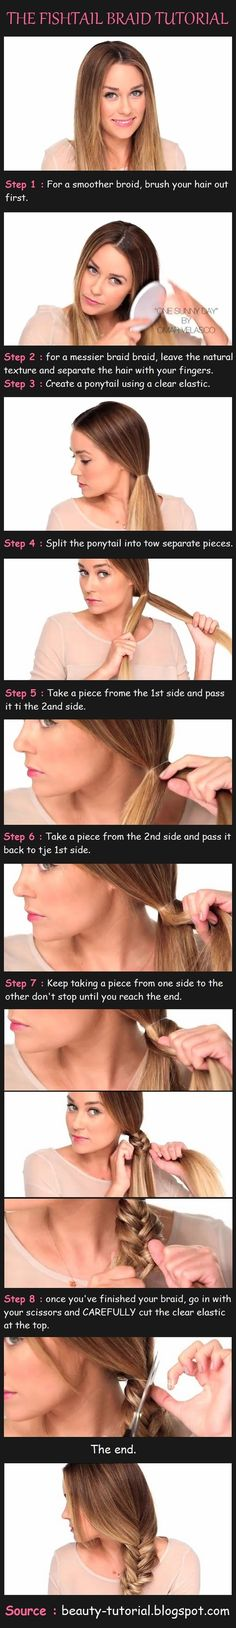 fish-tail braid tutorial//I almost didn't pin this because of the spelling, but you get the idea.